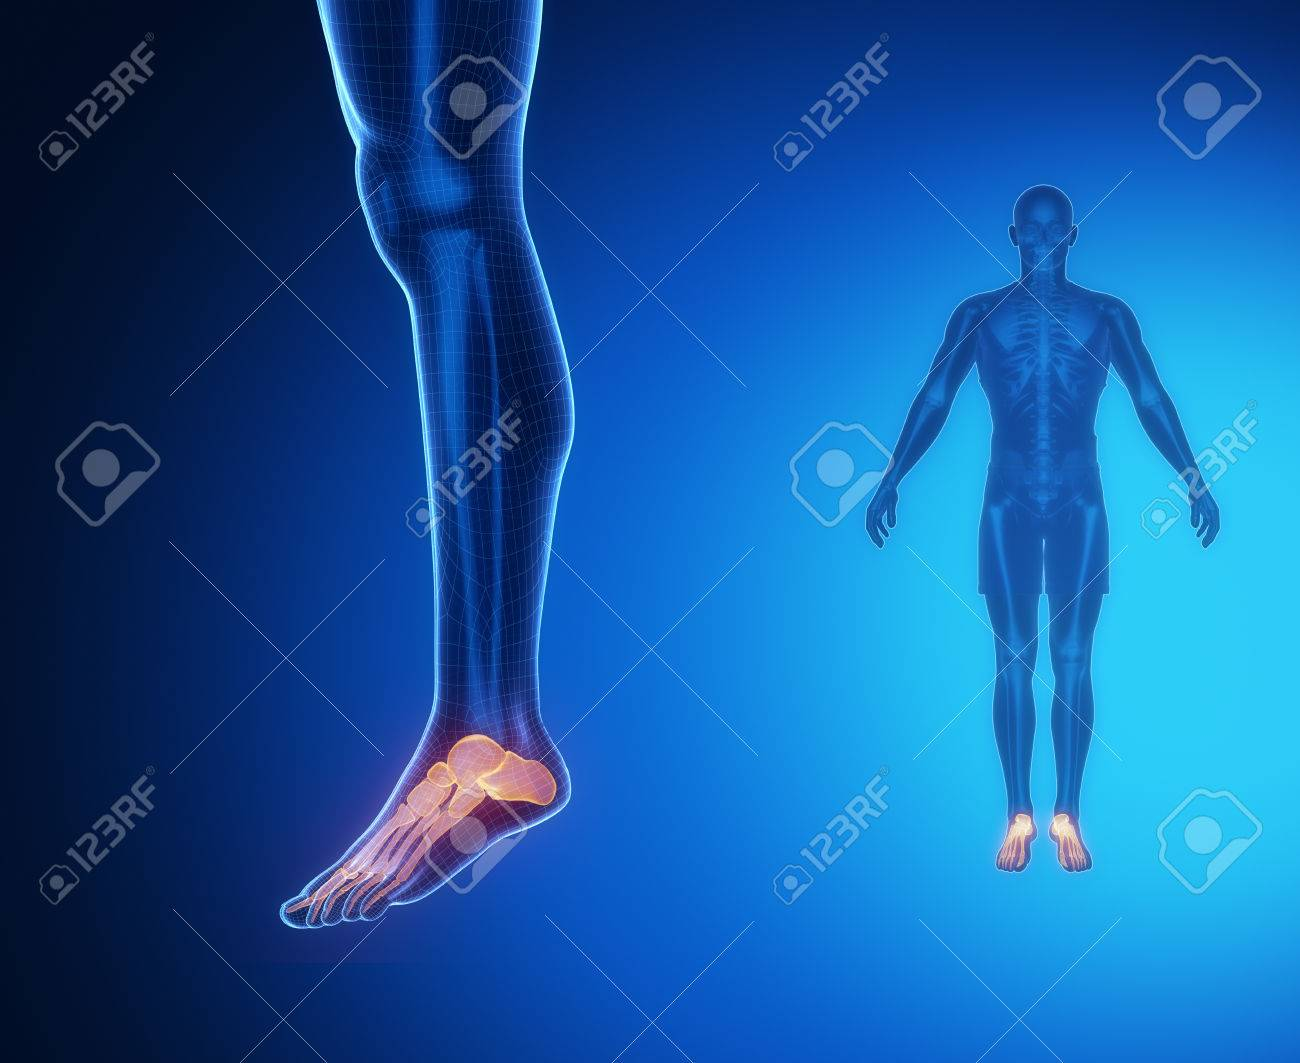 ANKLE Bone Anatomy X-ray Scan Stock Photo, Picture And Royalty Free ...